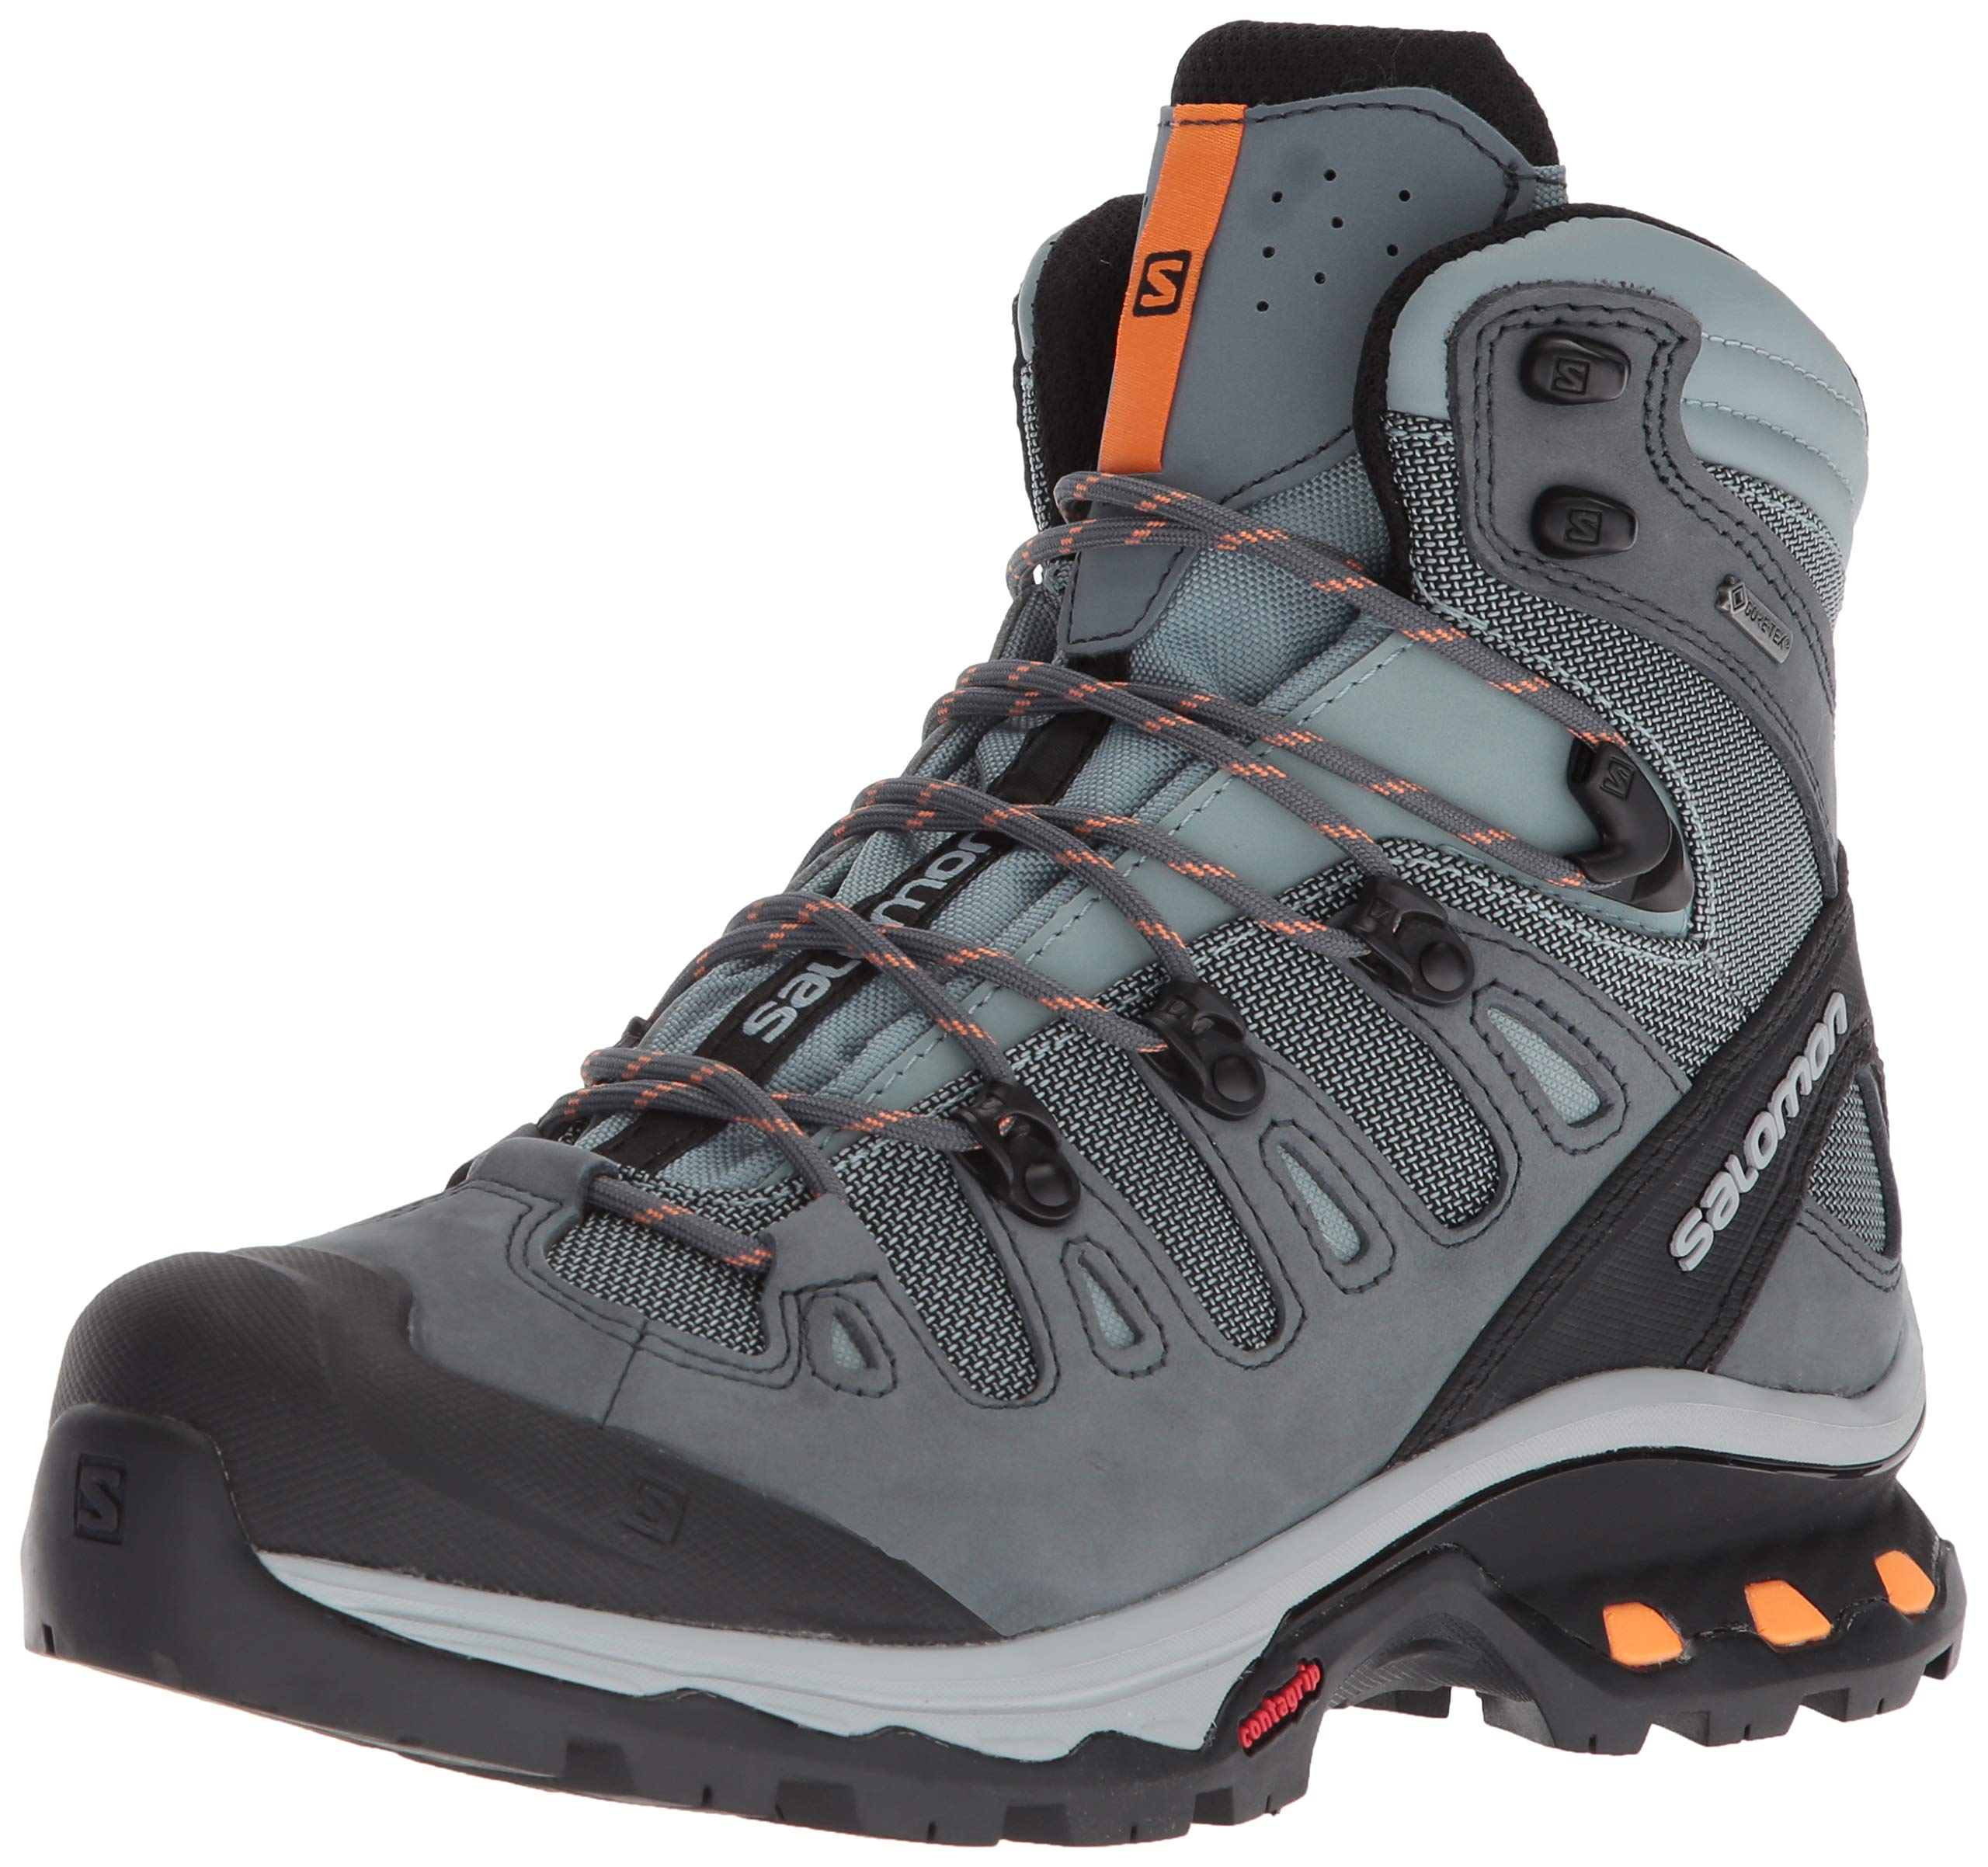 Salomon Women's Quest 4D 3 Gtx Backpacking Boots, Lead/Stormy Weather, 5 B US